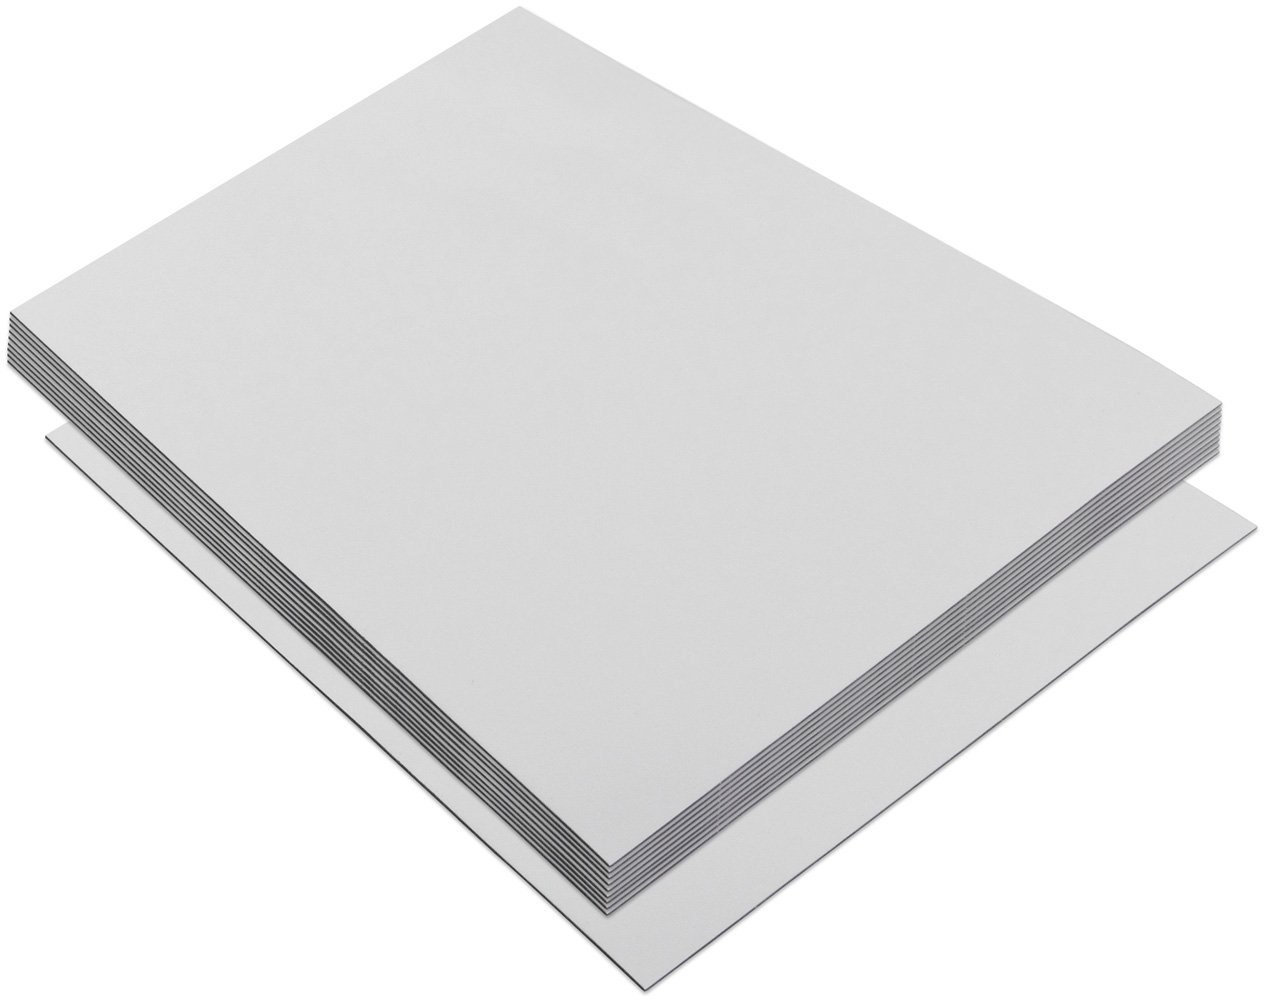 Flexible Magnet Strip with White Vinyl Coating, 1/32'' Thick, 4'' Height, 200 Feet cut loose Every 6'', 398 - 4'' x 6'' pieces